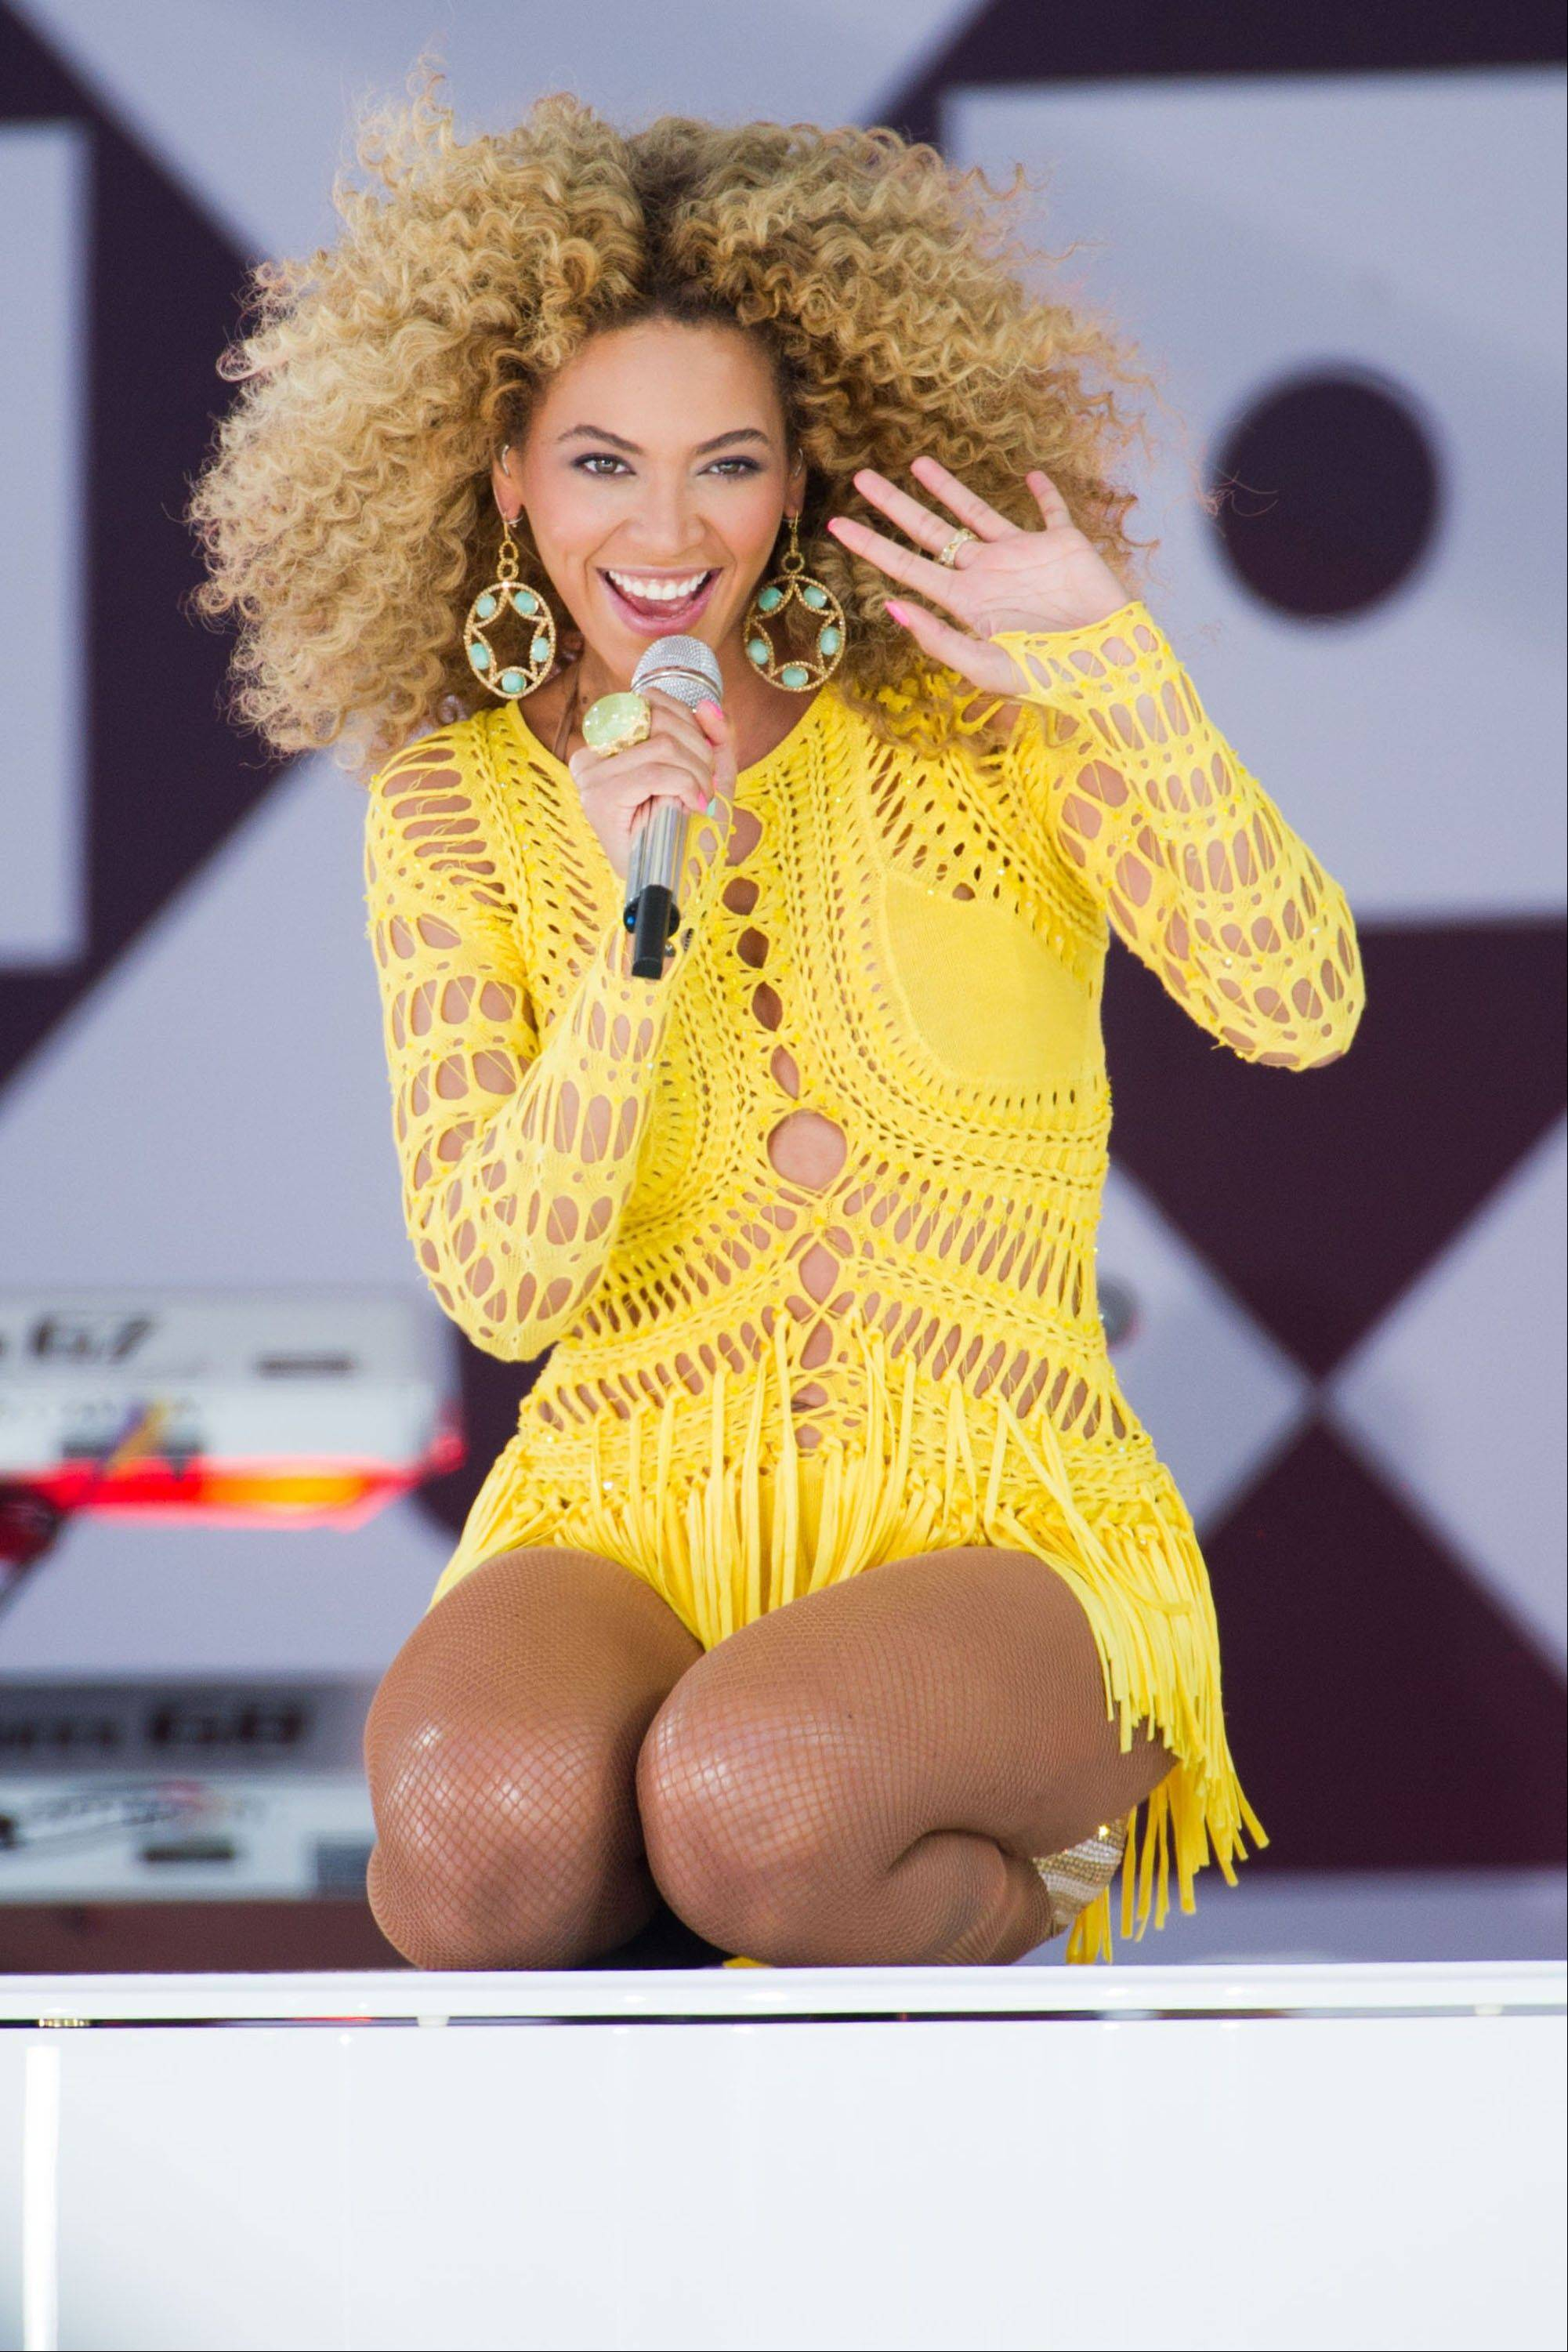 Through a photo contest, 100 fans will join Beyonc� onstage during the singer's halftime show performance at the 2013 Super Bowl on Feb. 3.